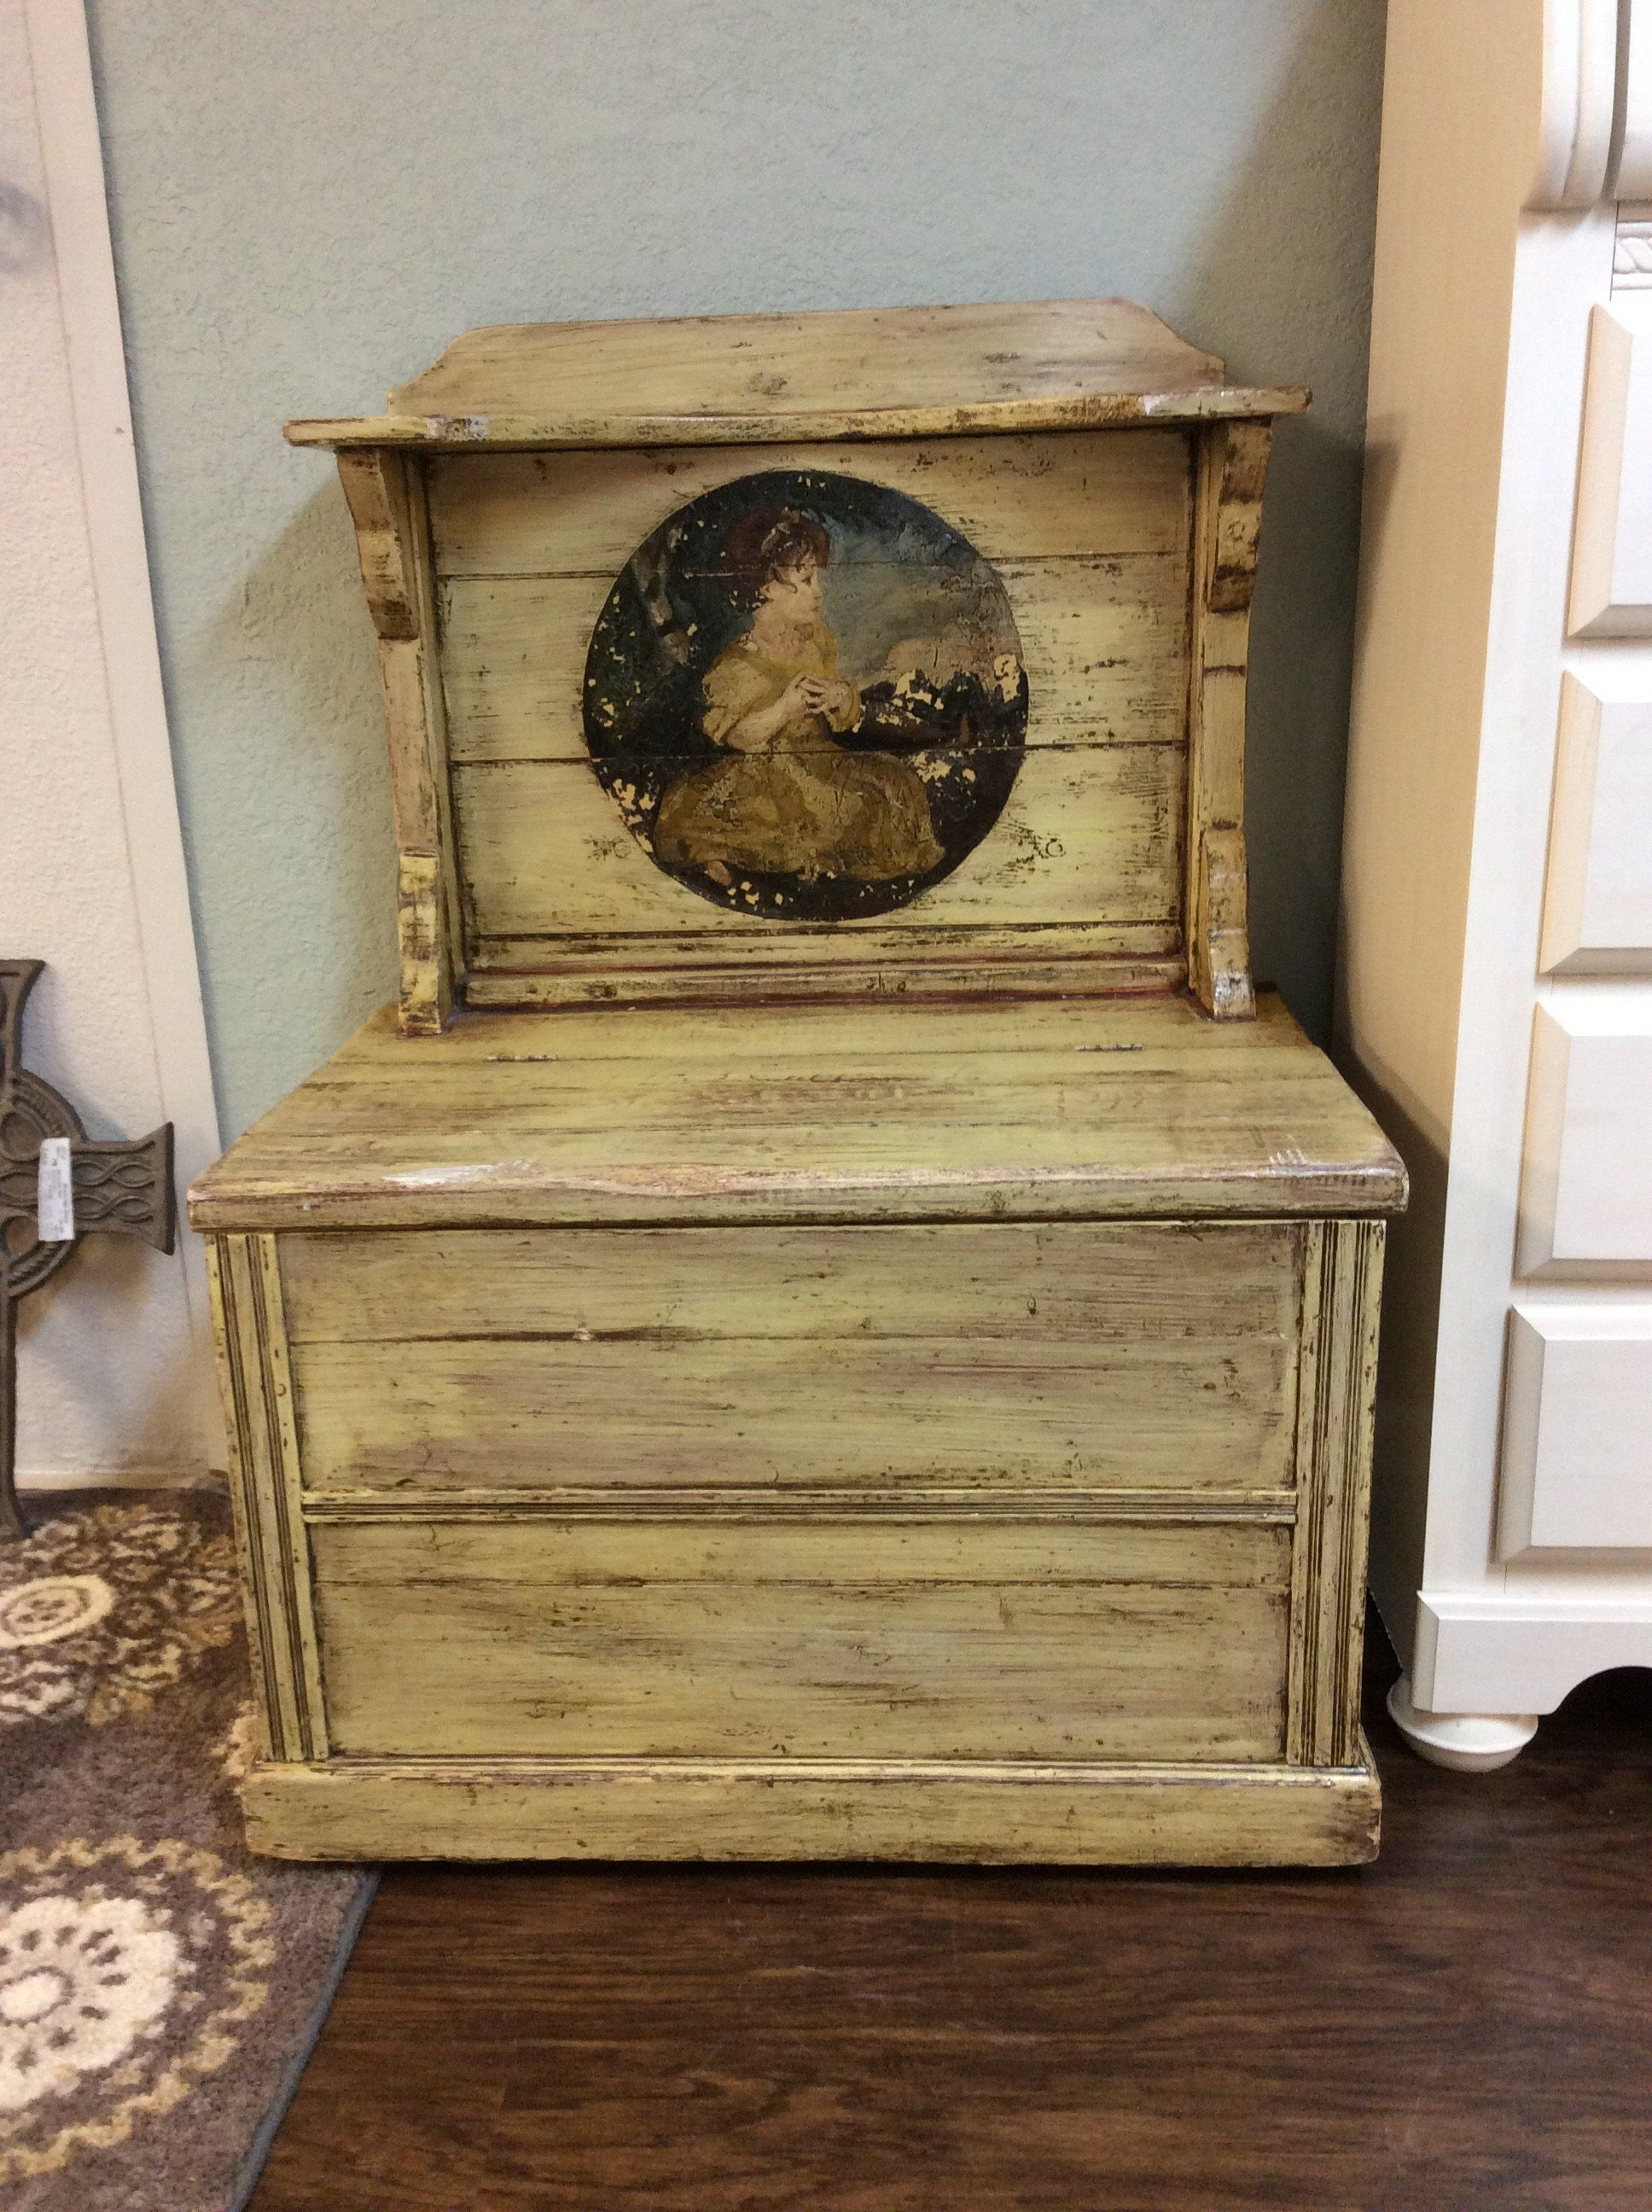 Charming Vintage Style Grain Toy Box Could Be Used As A Small Bench Or Simply As An Accessory Piece That Provides Am Toy Boxes Home Furnishings Storage Spaces